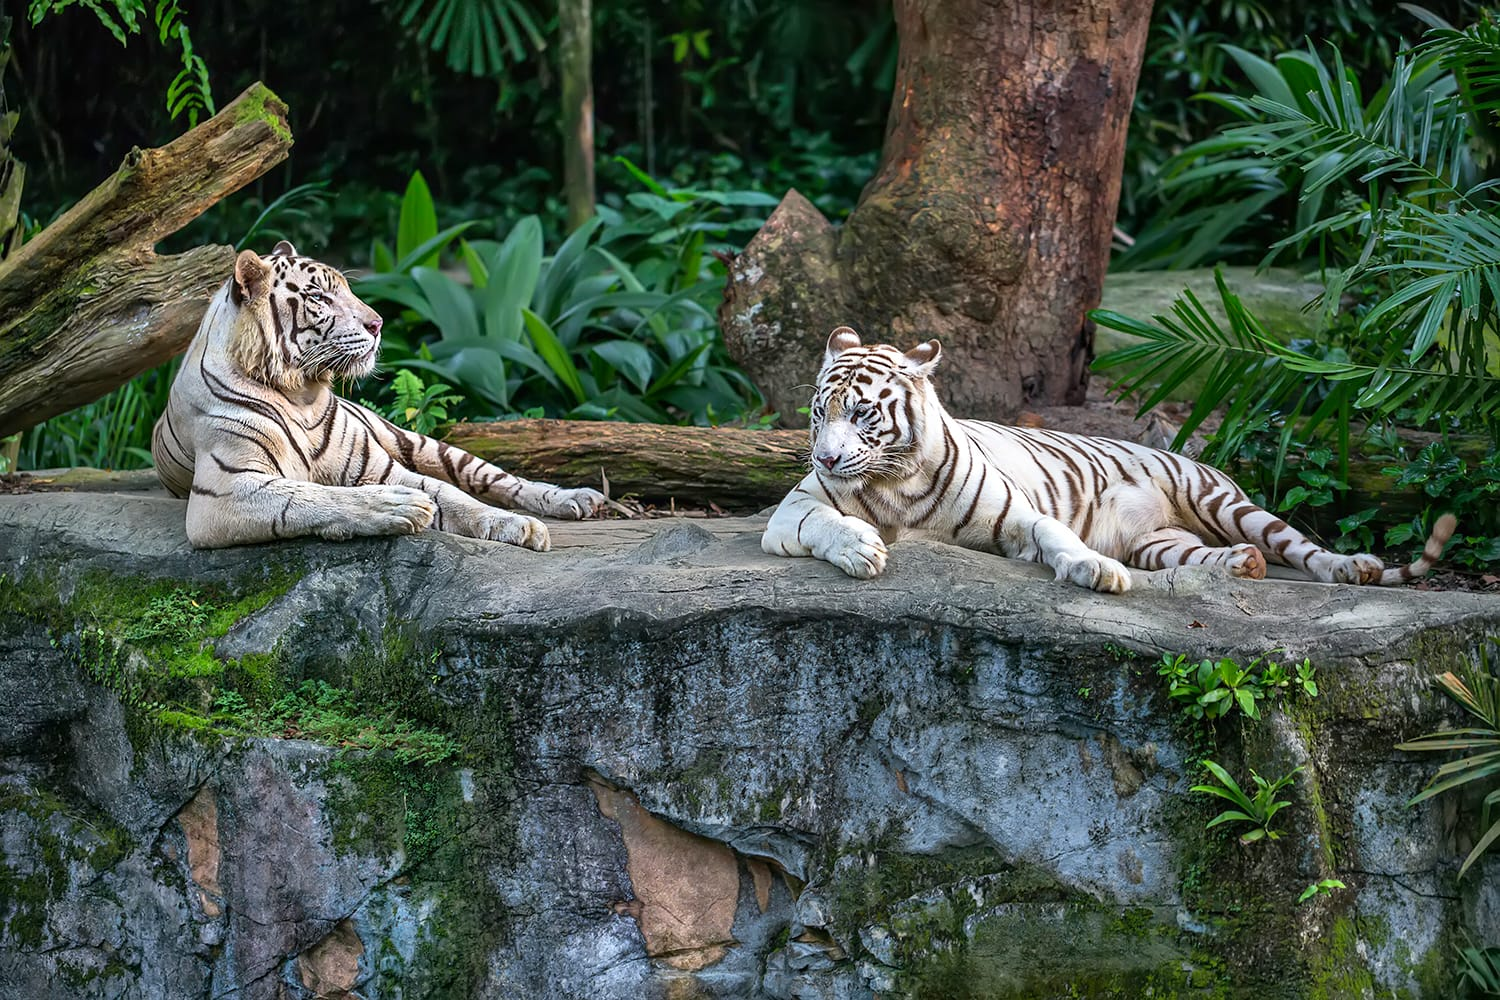 Zoos A Hidden Opportunity For Sustainable Architecture & Education